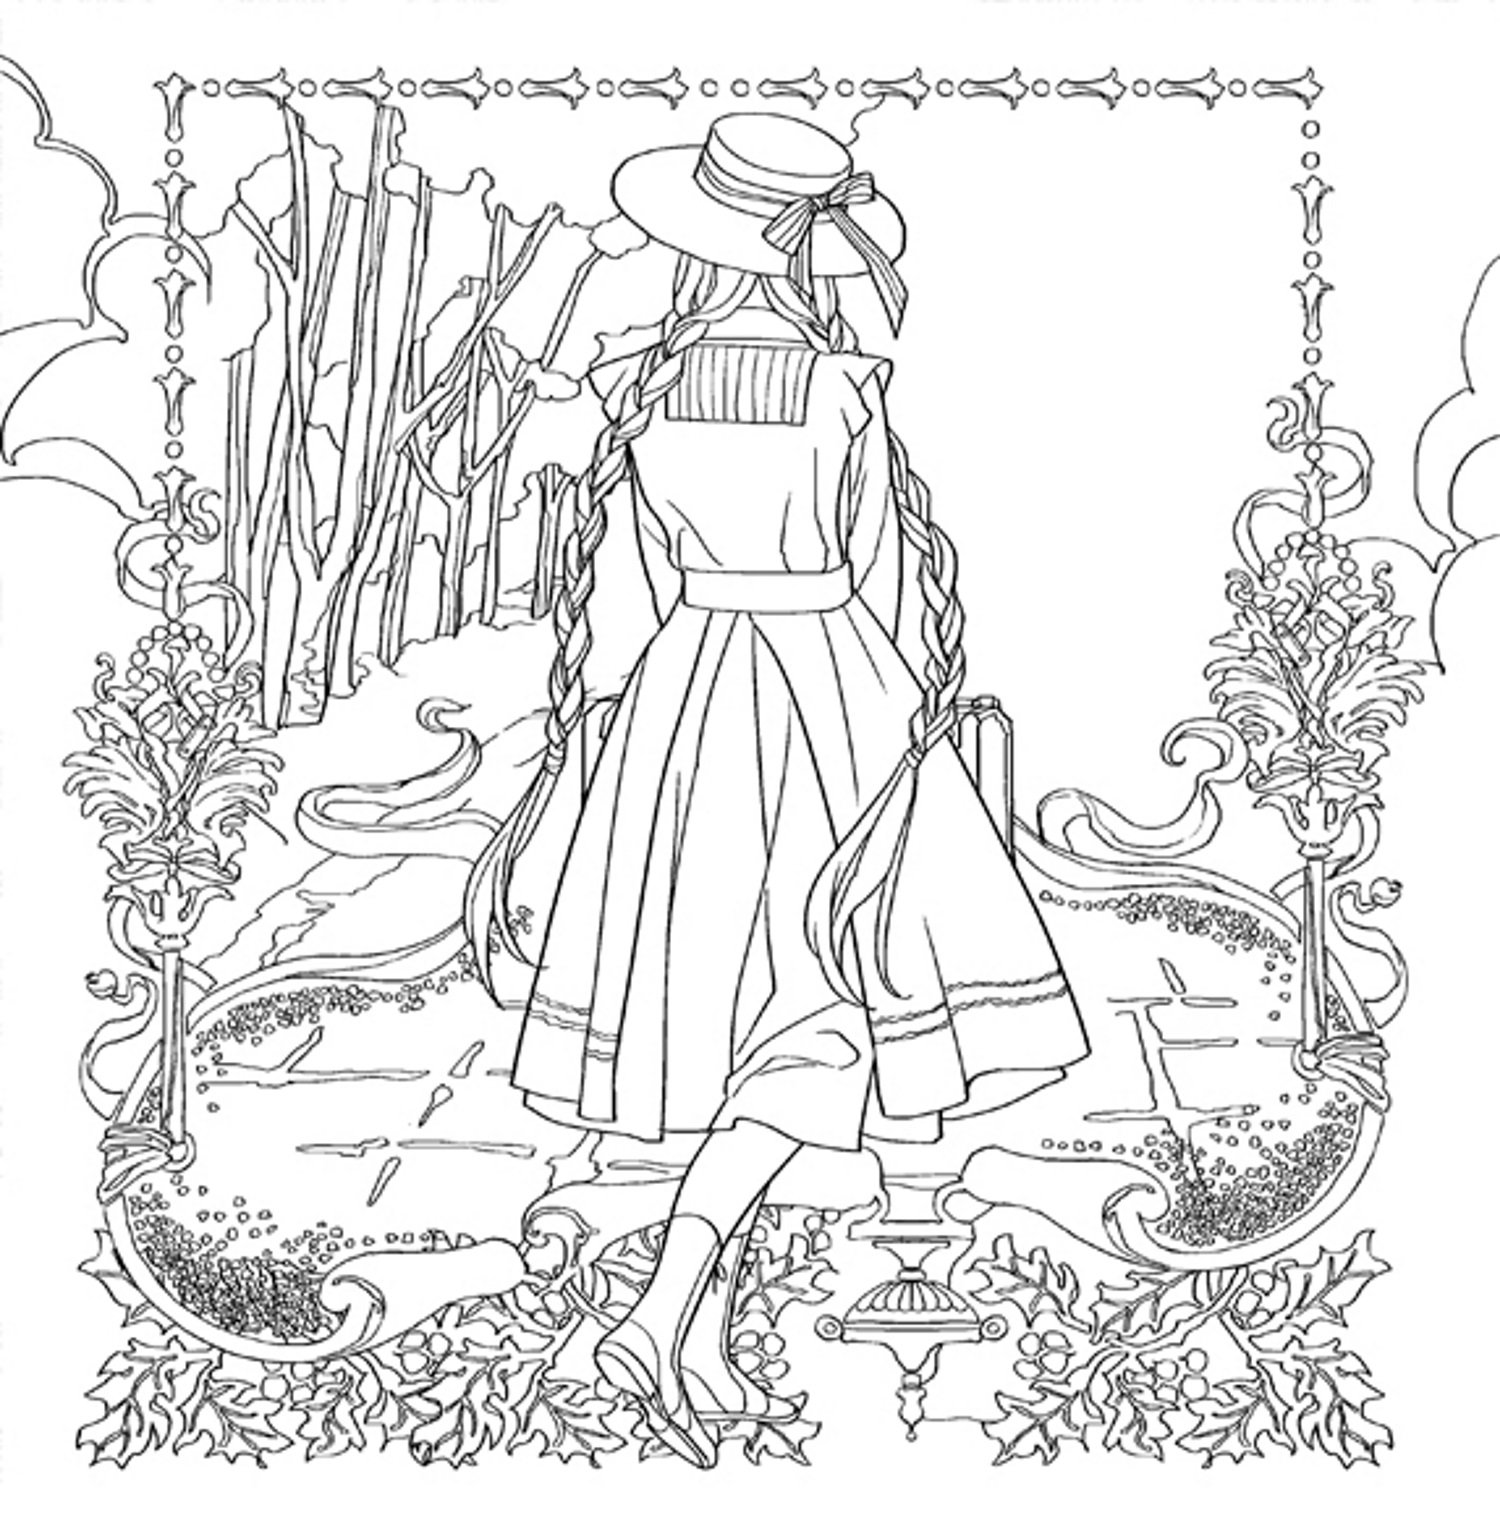 Anne Of Green Gables Coloring Pages Coloring Home Of Green Gables Coloring Pages